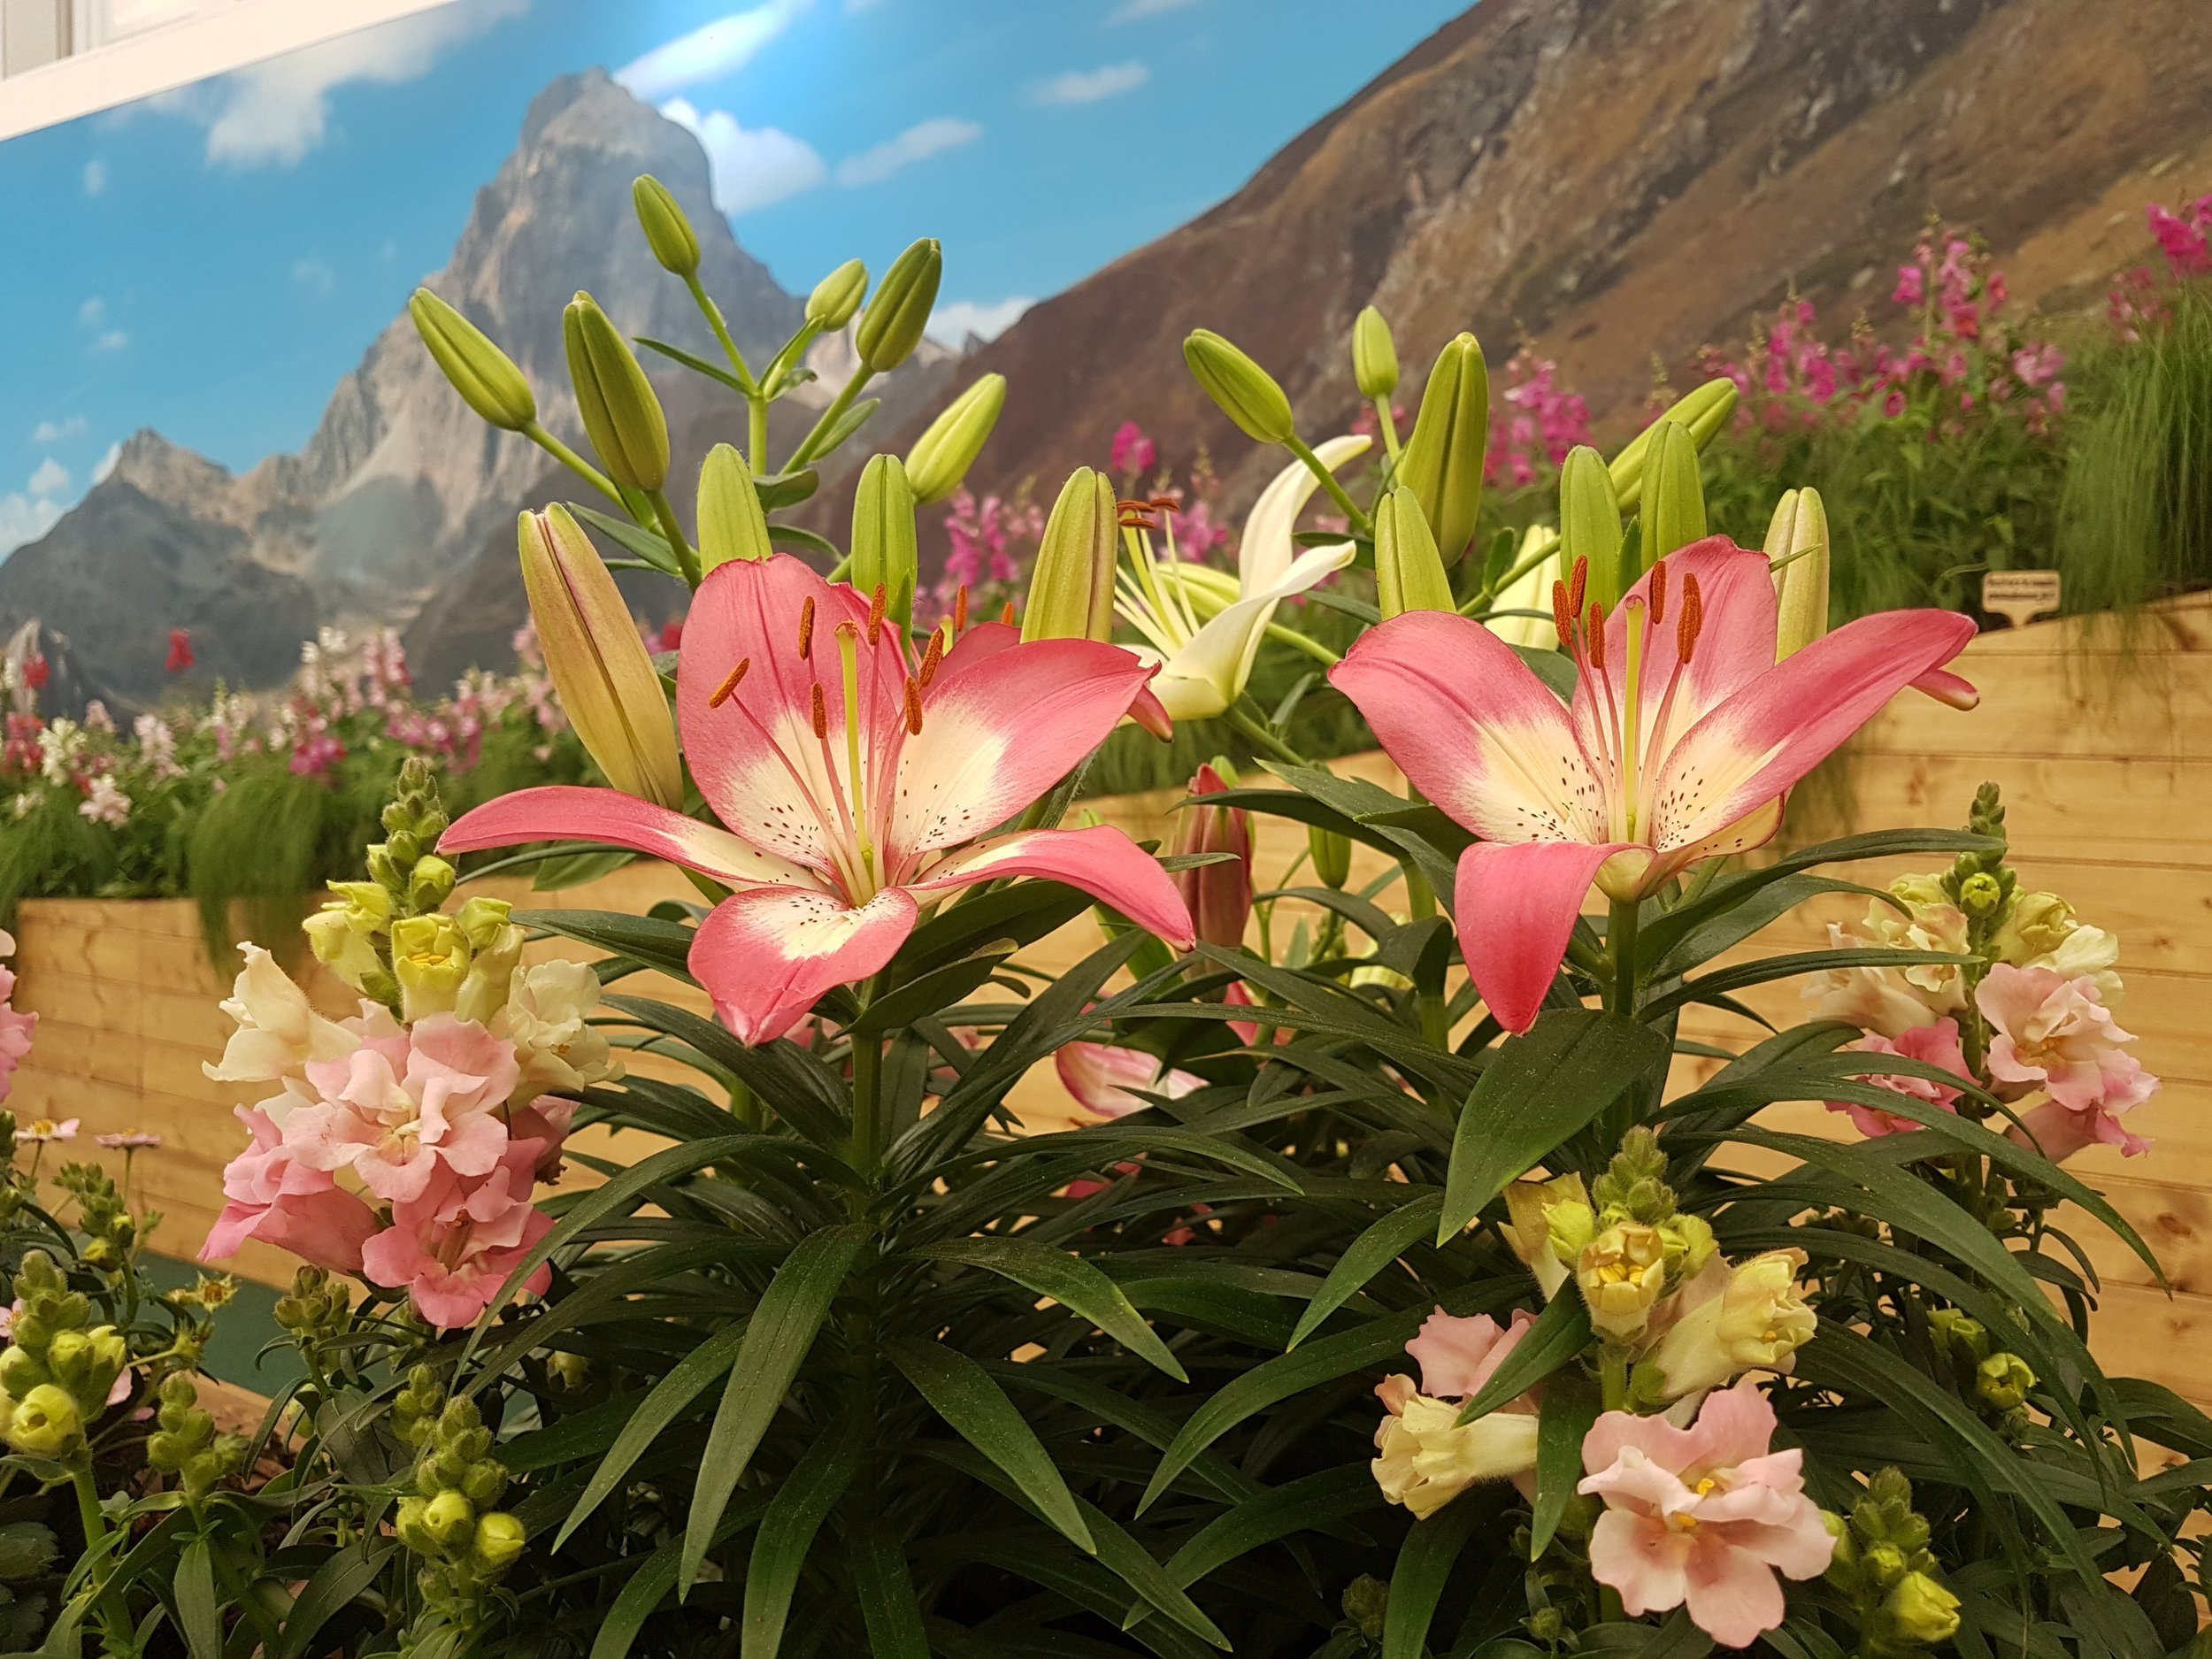 Lillies in the Valley